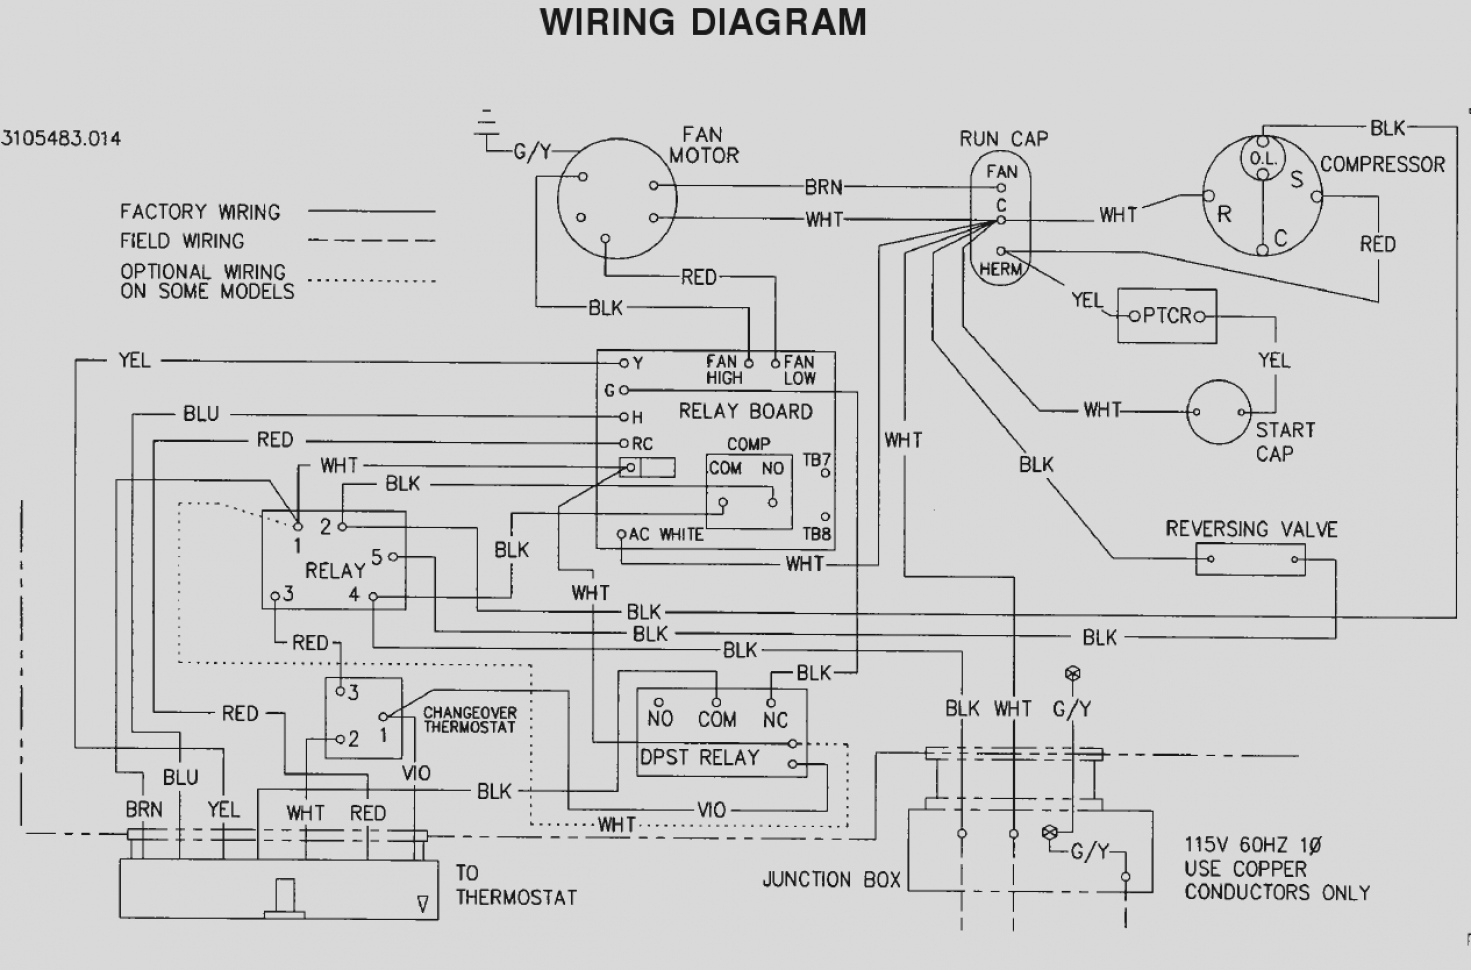 Old Lennox Furnace Wiring Diagram Free Download Wiring Diagram